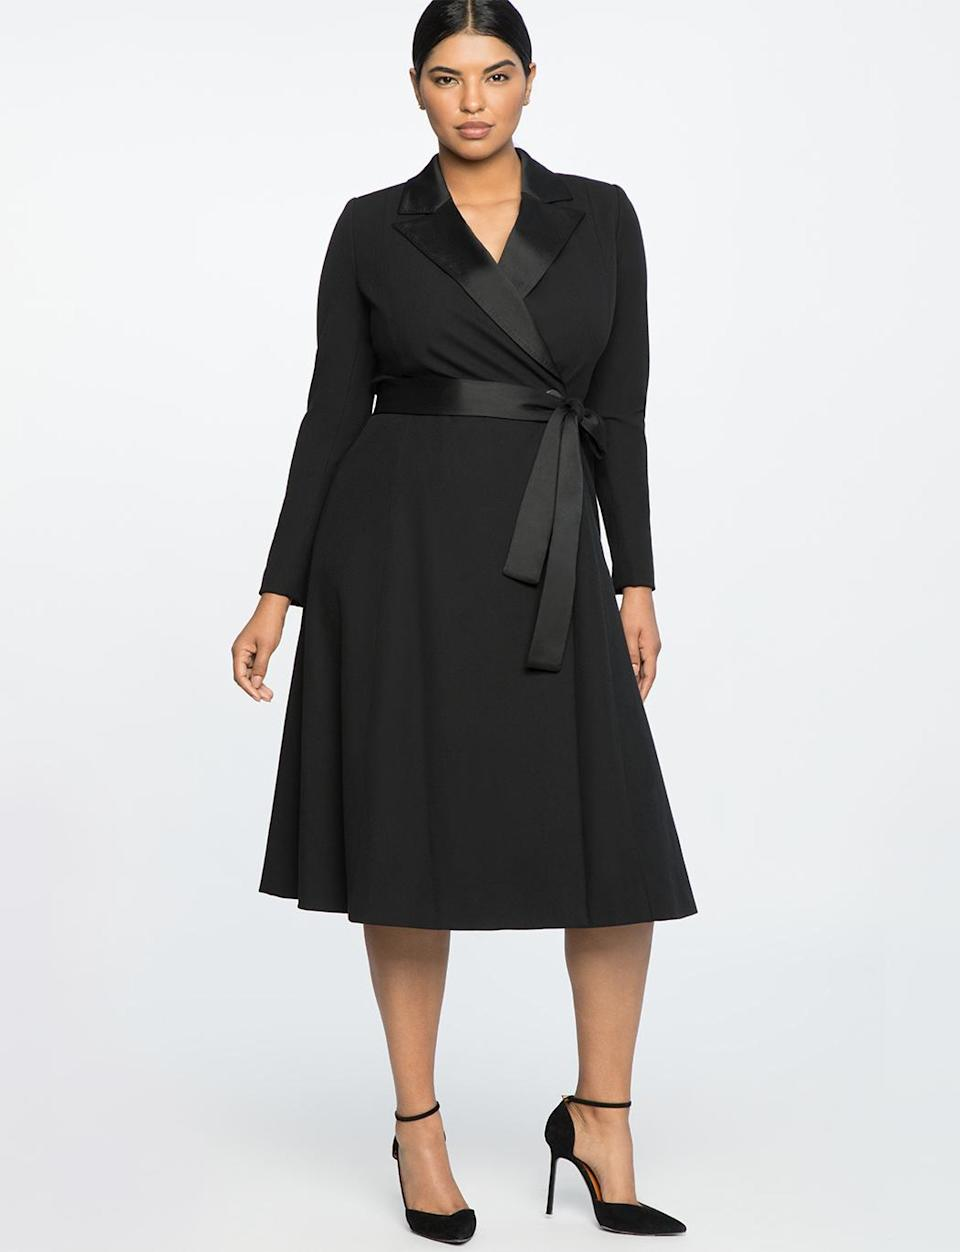 """<p>If you've always had trouble finding an evening coat that was sleek and elegant for the holidays but wasn't another trench or wool coat, this version is lighter and still sophisticated, with its satin lapels and tie belt. <br>Jason Wu x Eloquii belted coat, $260, <a rel=""""nofollow noopener"""" href=""""https://fave.co/2zkyJQz"""" target=""""_blank"""" data-ylk=""""slk:eloquii.com"""" class=""""link rapid-noclick-resp"""">eloquii.com</a> </p>"""